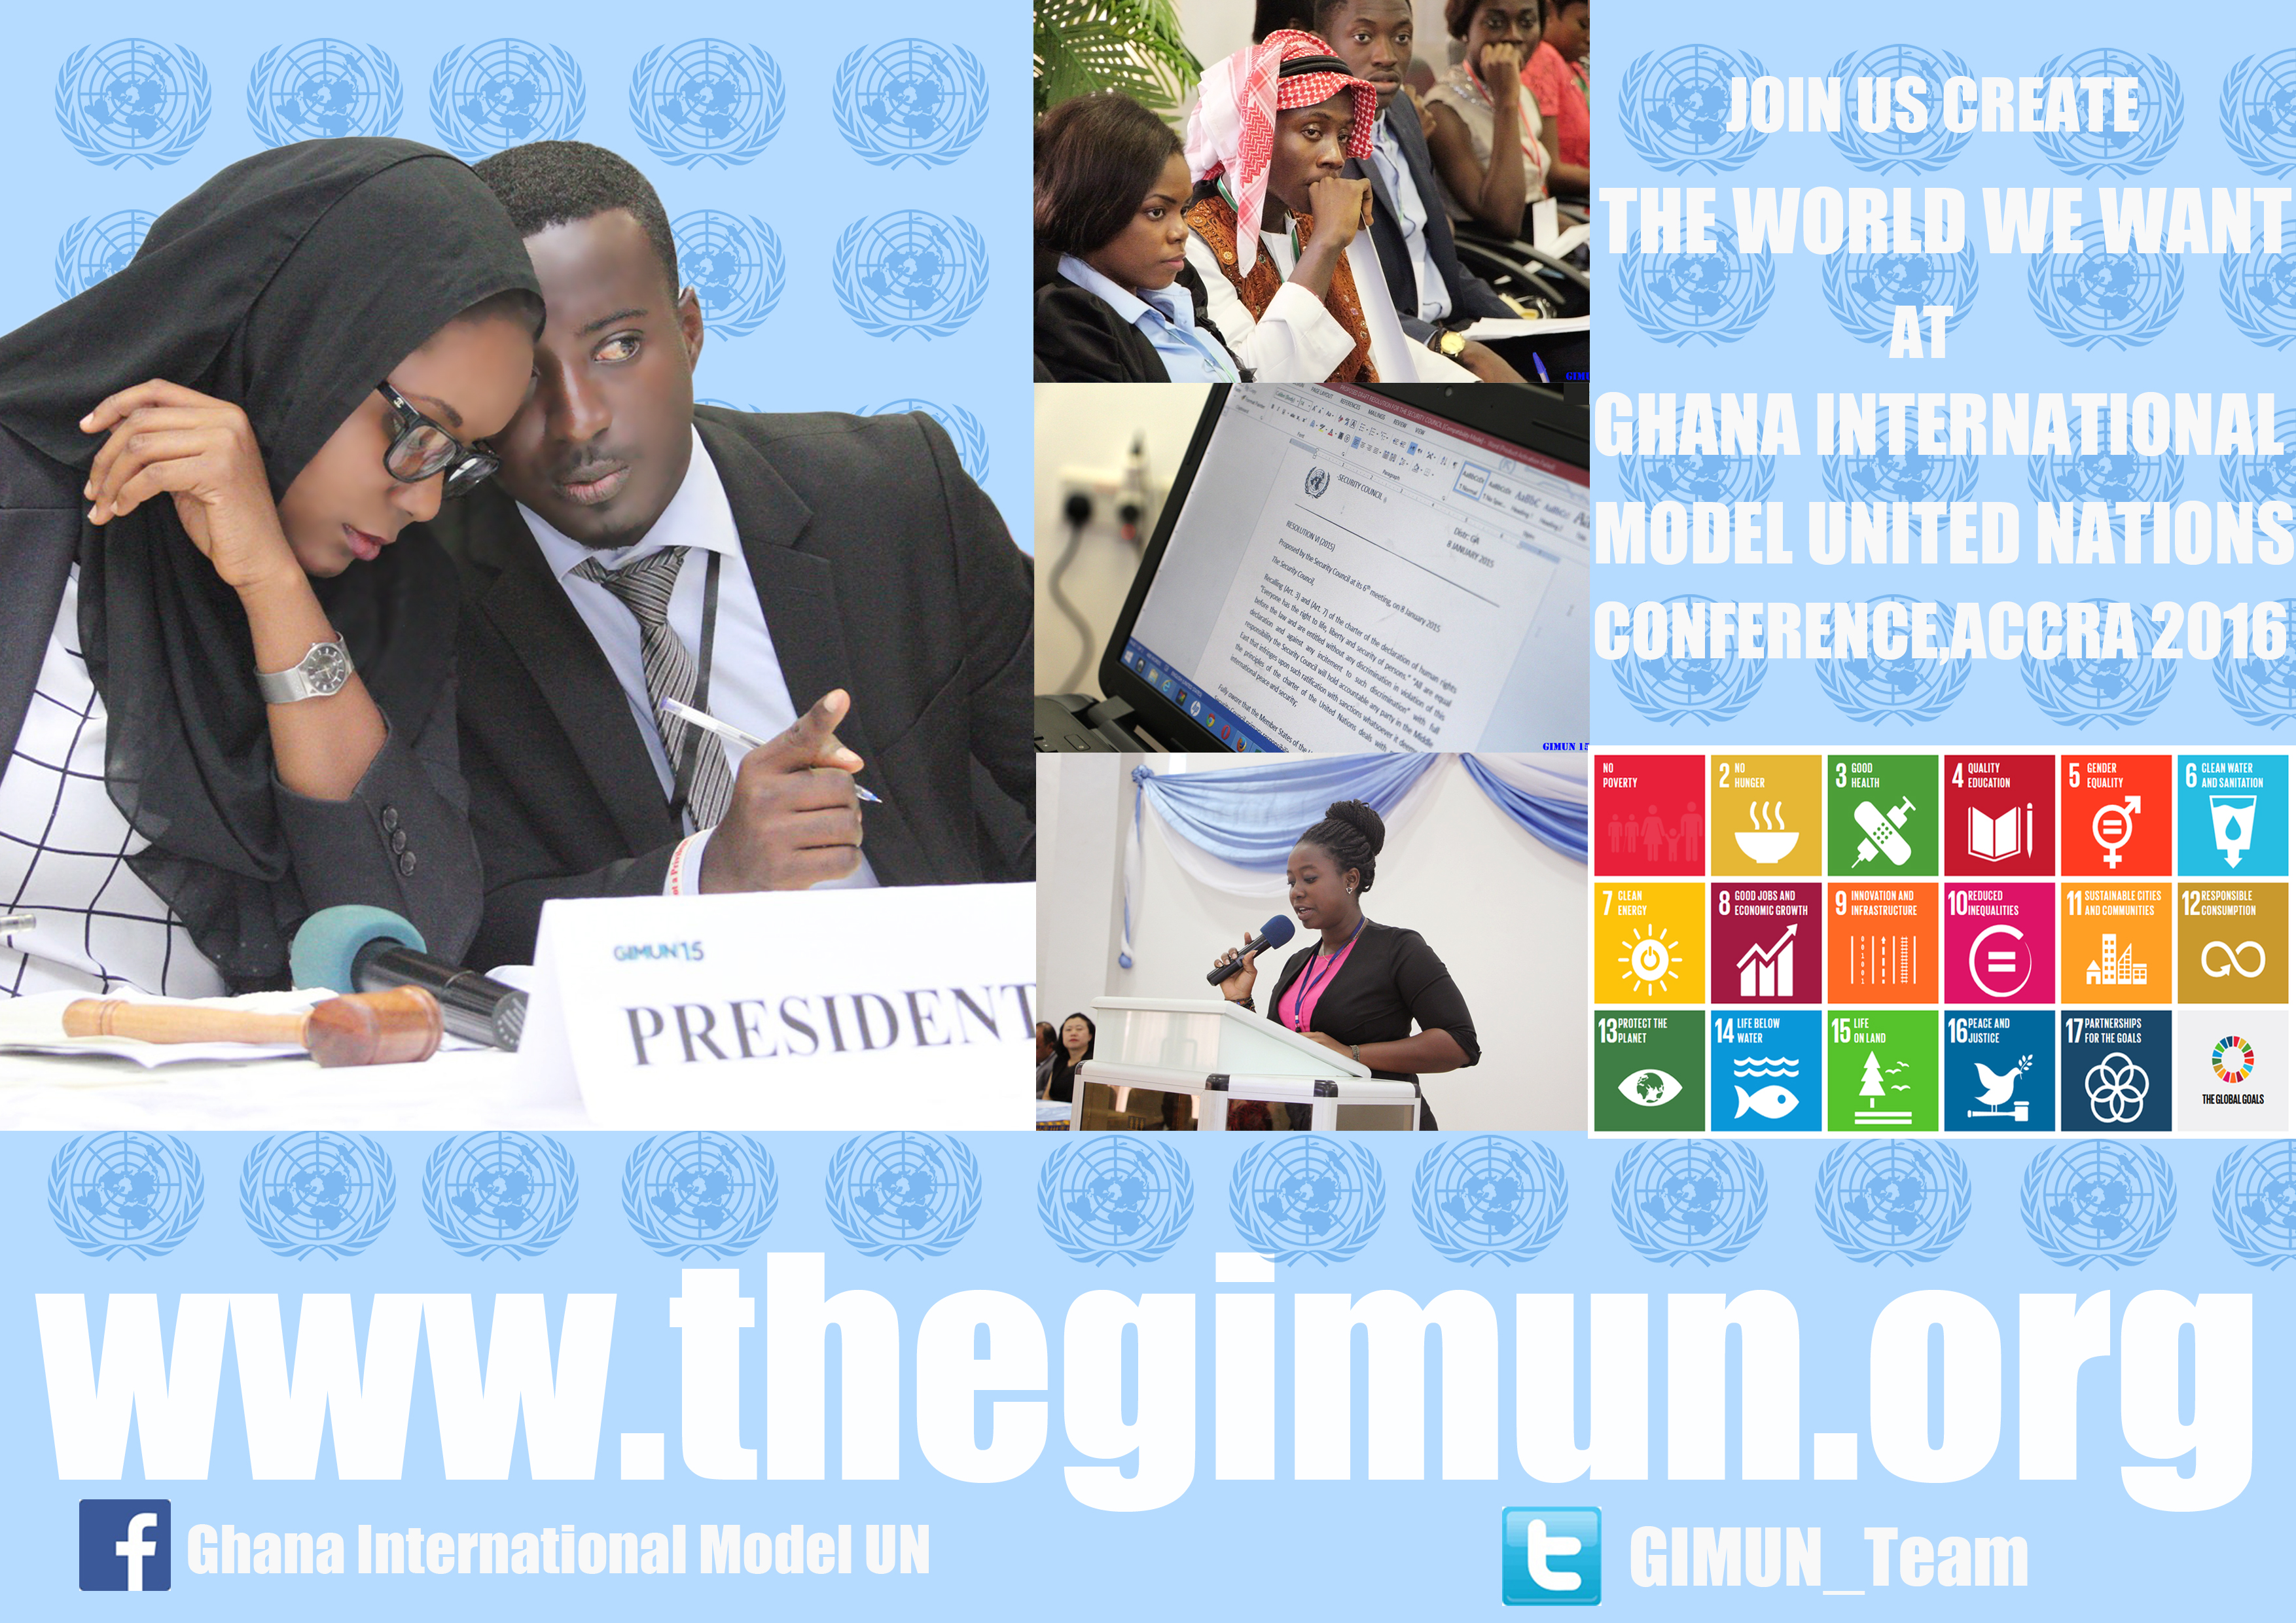 Apply as a Delegate to the GIMUN Conference for Youth 2016 – Accra, Ghana